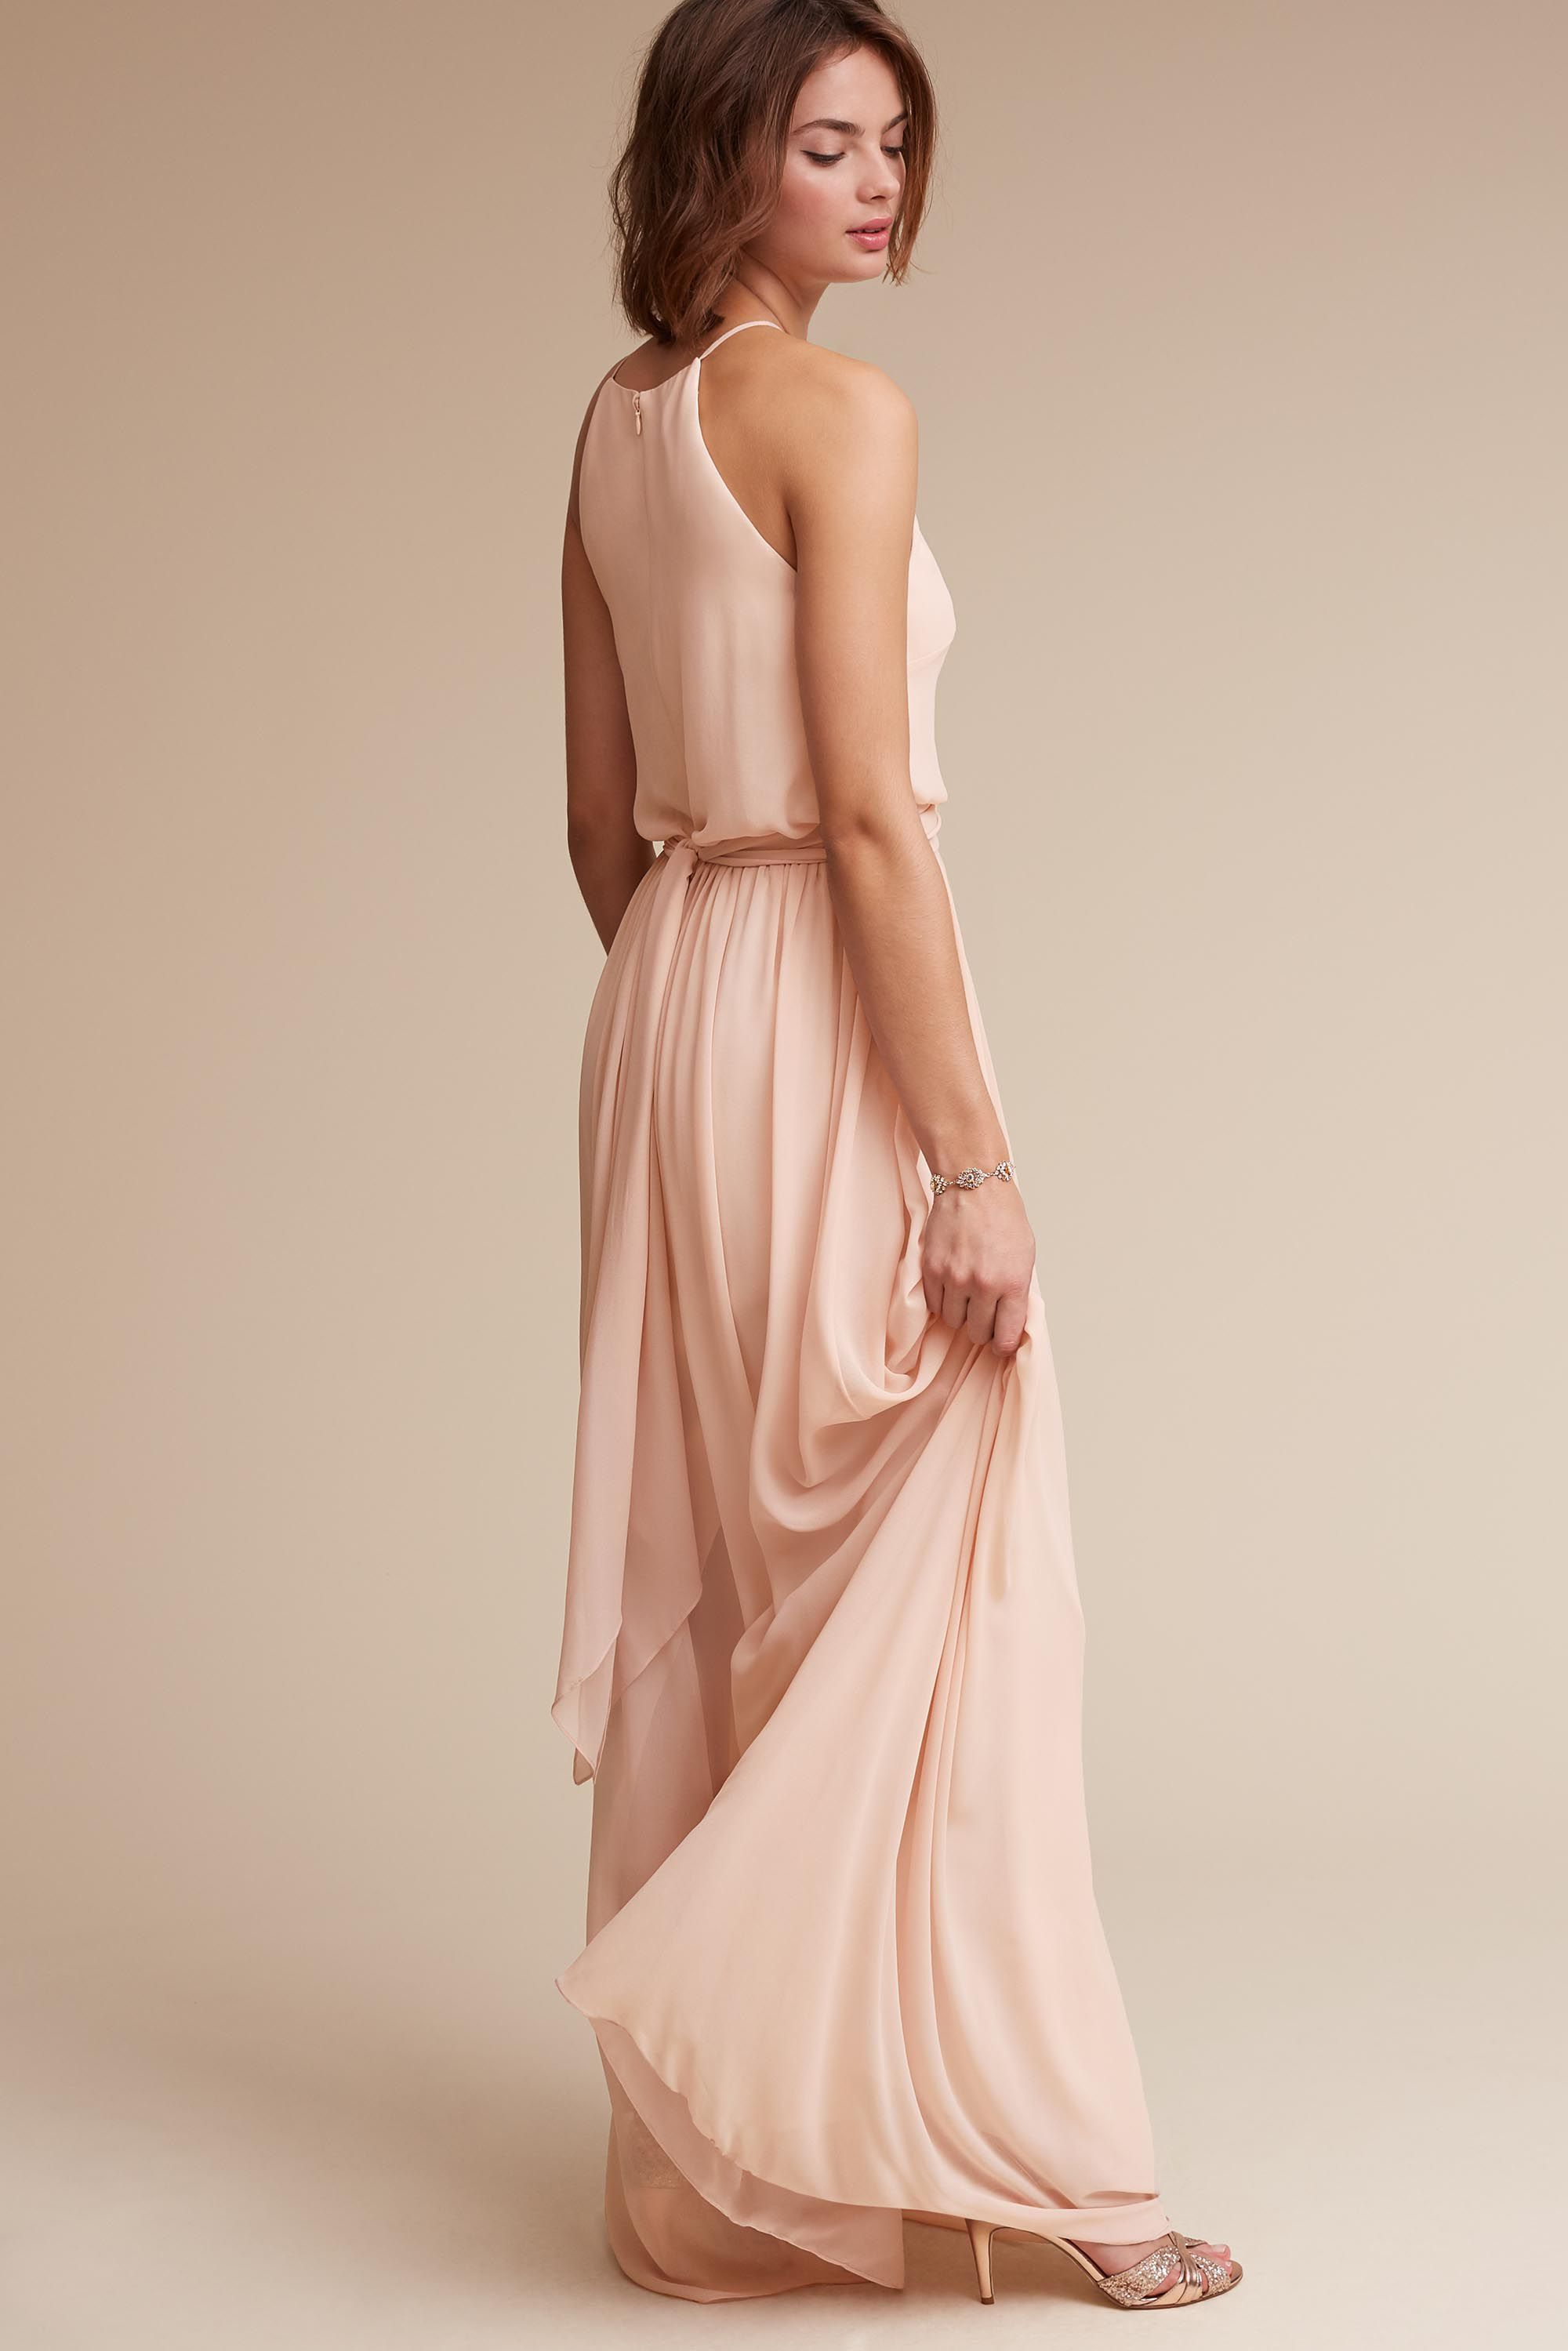 Simple And Elegant Long Bridesmaid Dresses Ideas For Your Best ...